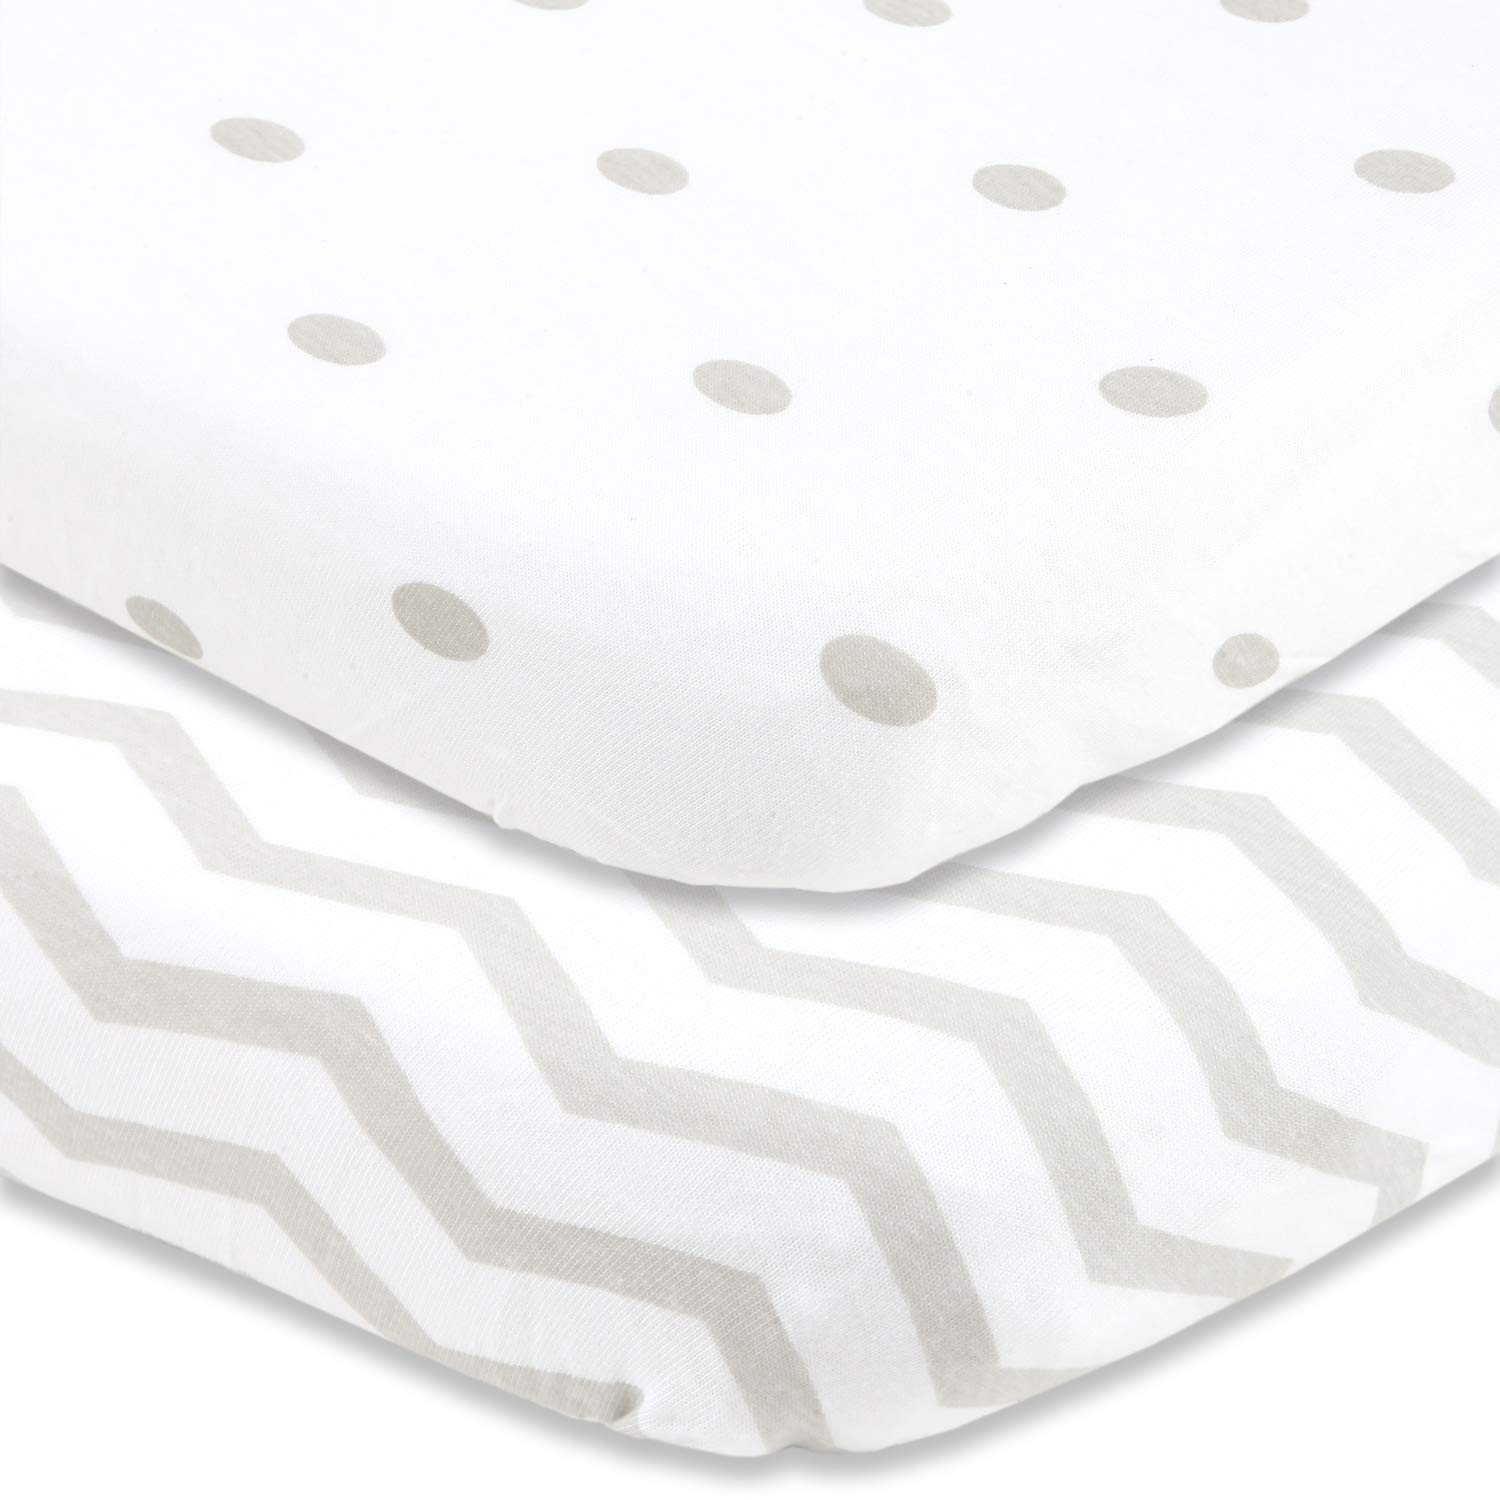 Cuddly Cubs Pack n Play Sheets | 2 Pack Playard Sheet for Baby Girl and Boy | 100% Jersey Cotton Unisex Mini Portable Crib Sheets | Polka Dots and Chevron in Grey | Best Baby Shower Gift | Fits Graco